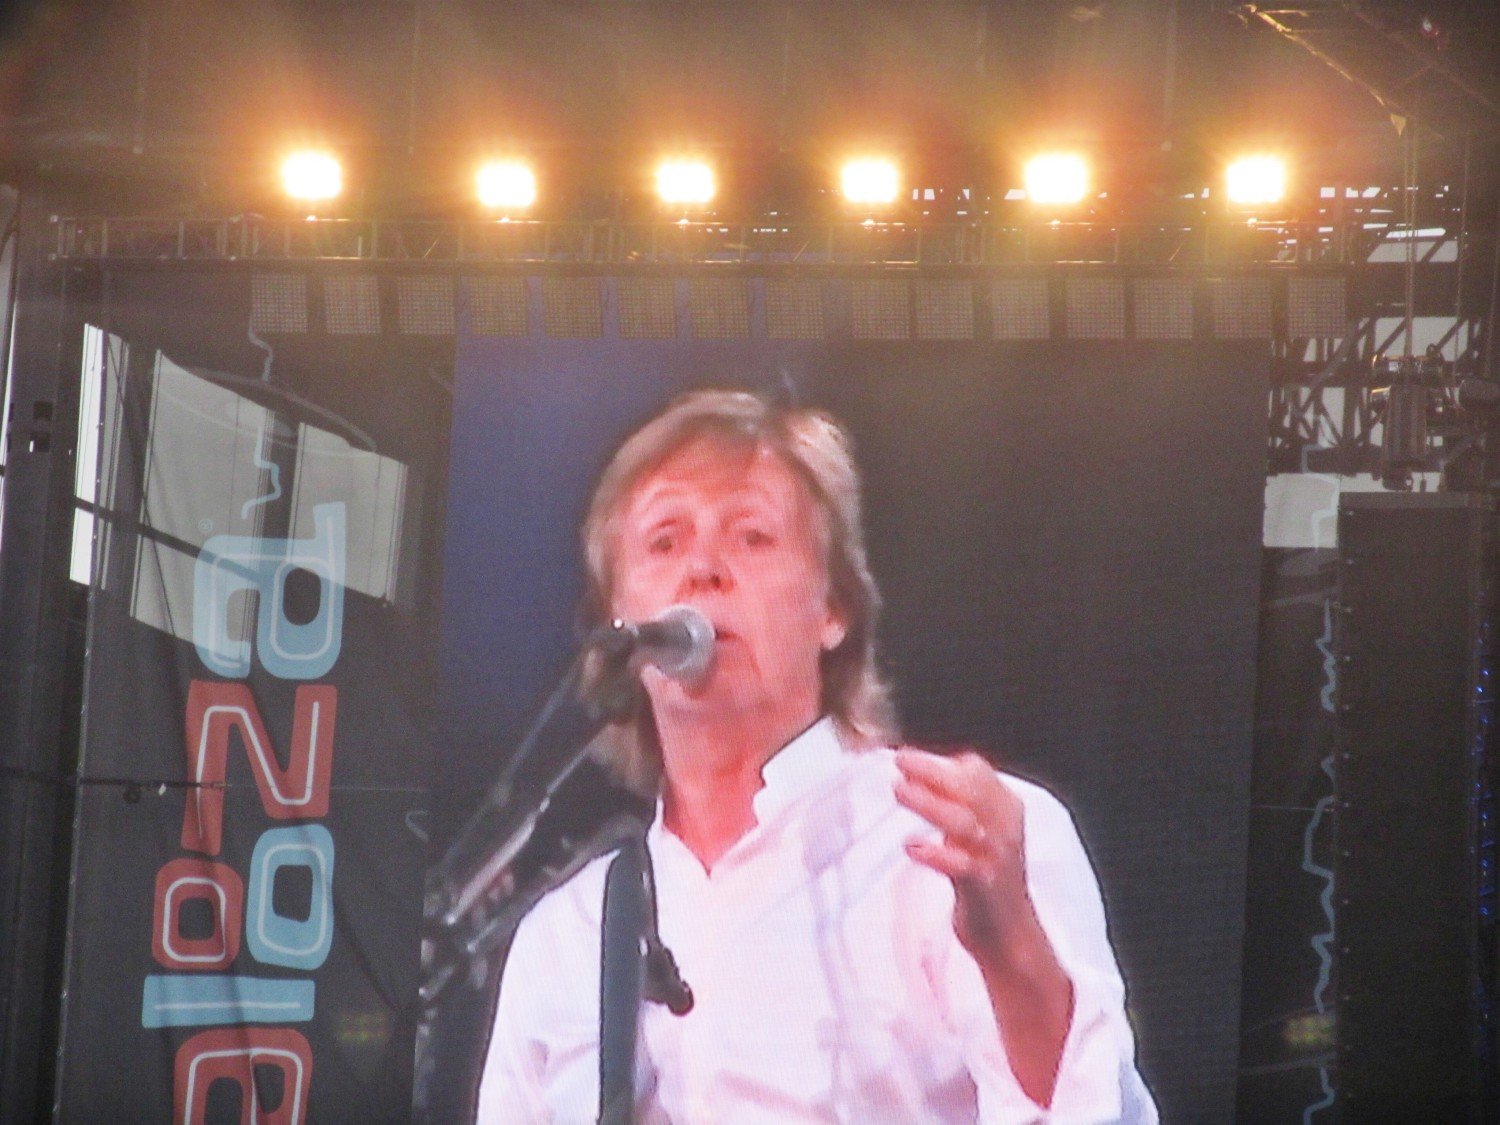 Paul McCartney Lollapalooza